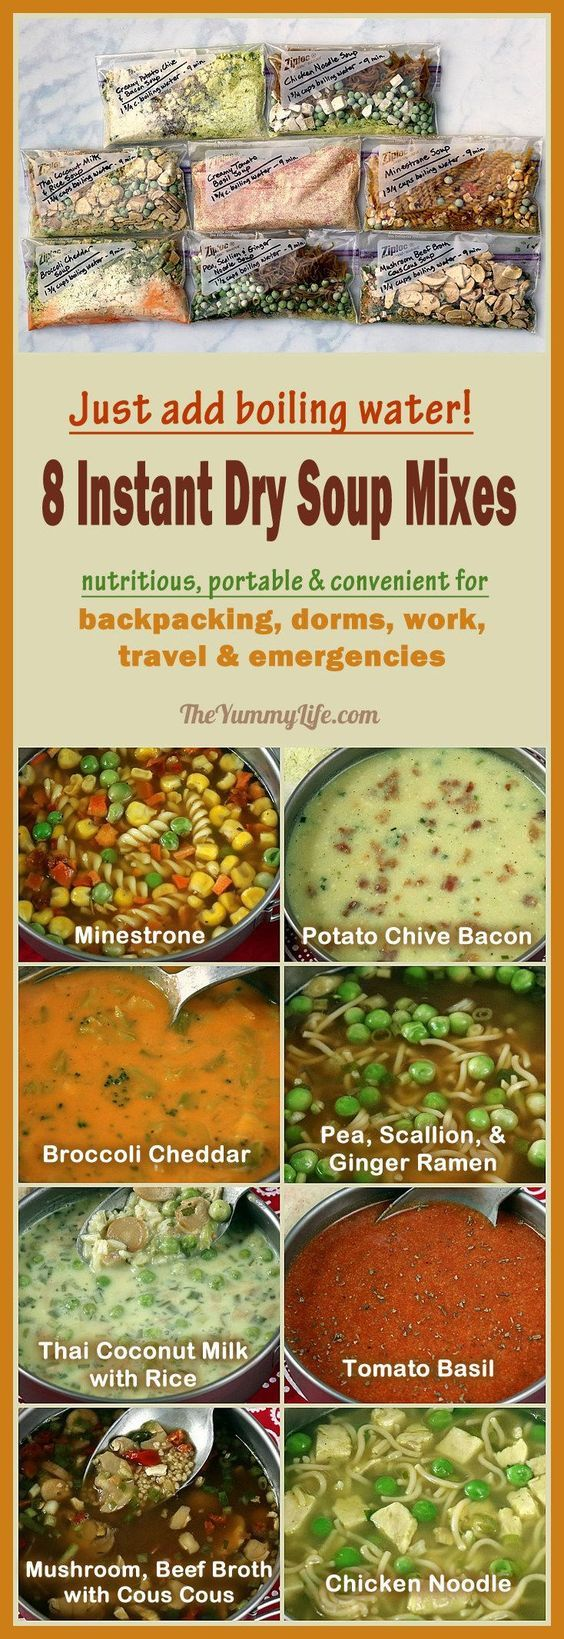 Just add boiling water for 8 instant, nutritious soups that are perfect for backpacking, camping, dorms, office, travel, and emergencies. A better, homemade, DIY cup-a-soup. From TheYummyLife.comLori Smith